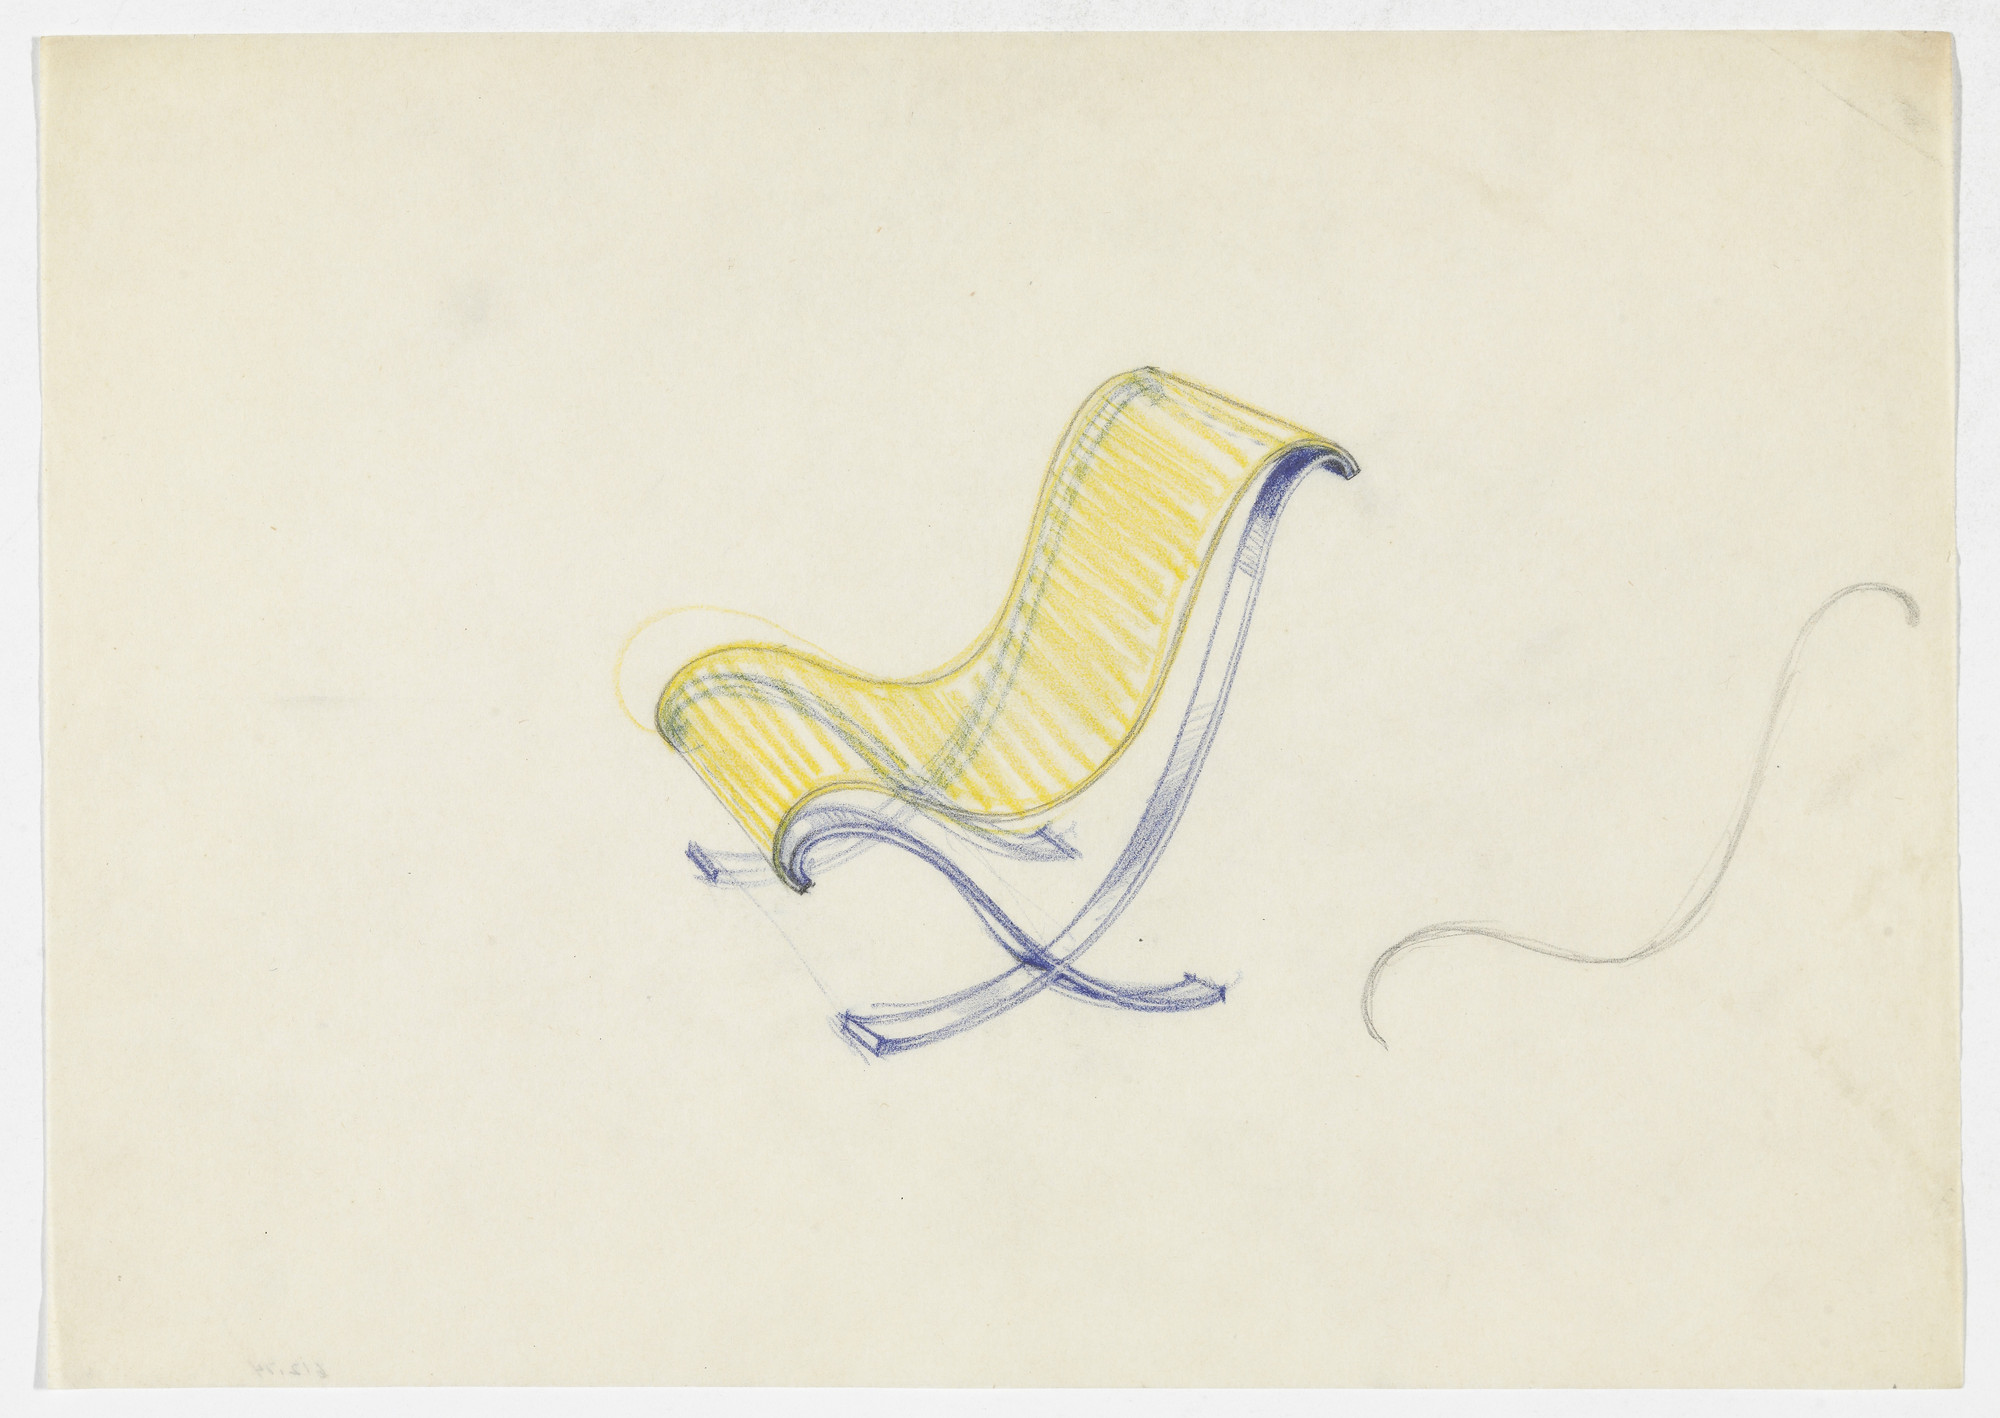 Ludwig Mies van der Rohe. Lounge Chair without Arms. Frame. (Perspective sketch; elevation sketch). 1934